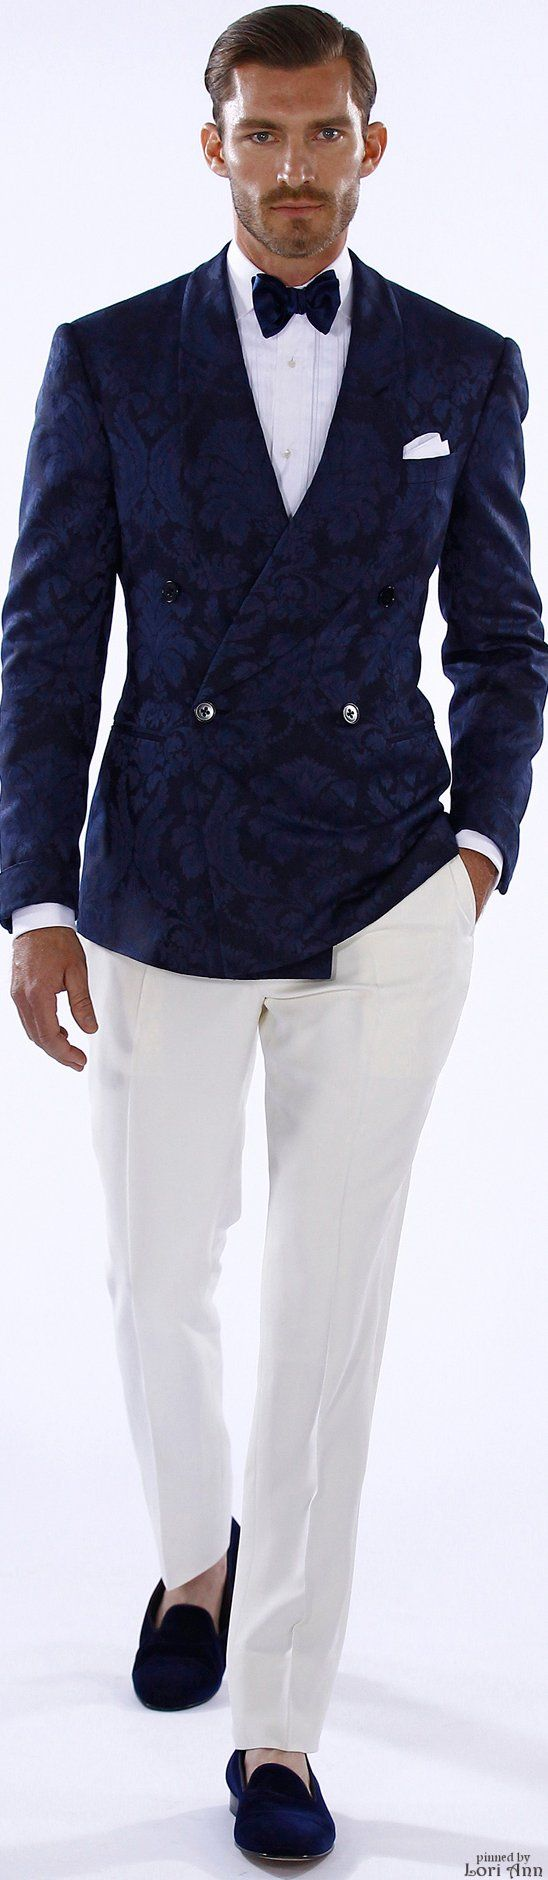 Ralph Lauren Spring 2016 | Men's Fashion | Menswear | Men's Outfits Ideas | white Pants/Trousers, Printed Navy Double Breasted Suit Jacket | Stylish and Sophisticated | Shop at designerclothingfans.com